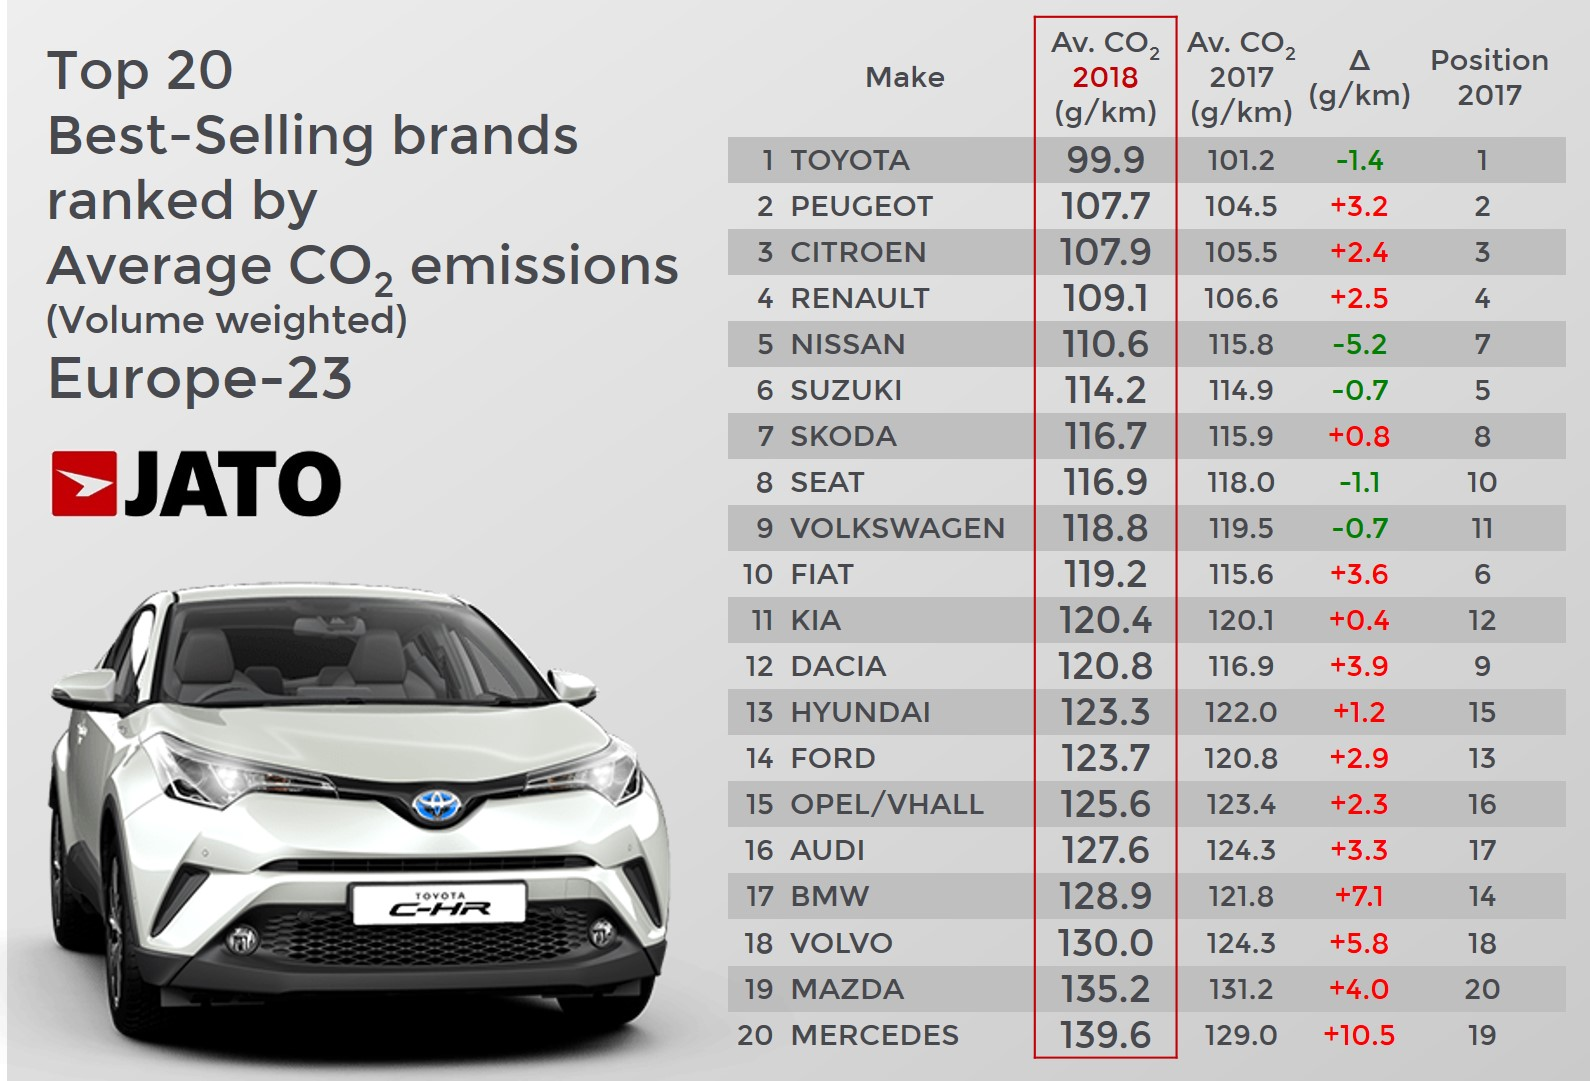 Co2 Emissions Rise To Highest Average Since 2014 As The